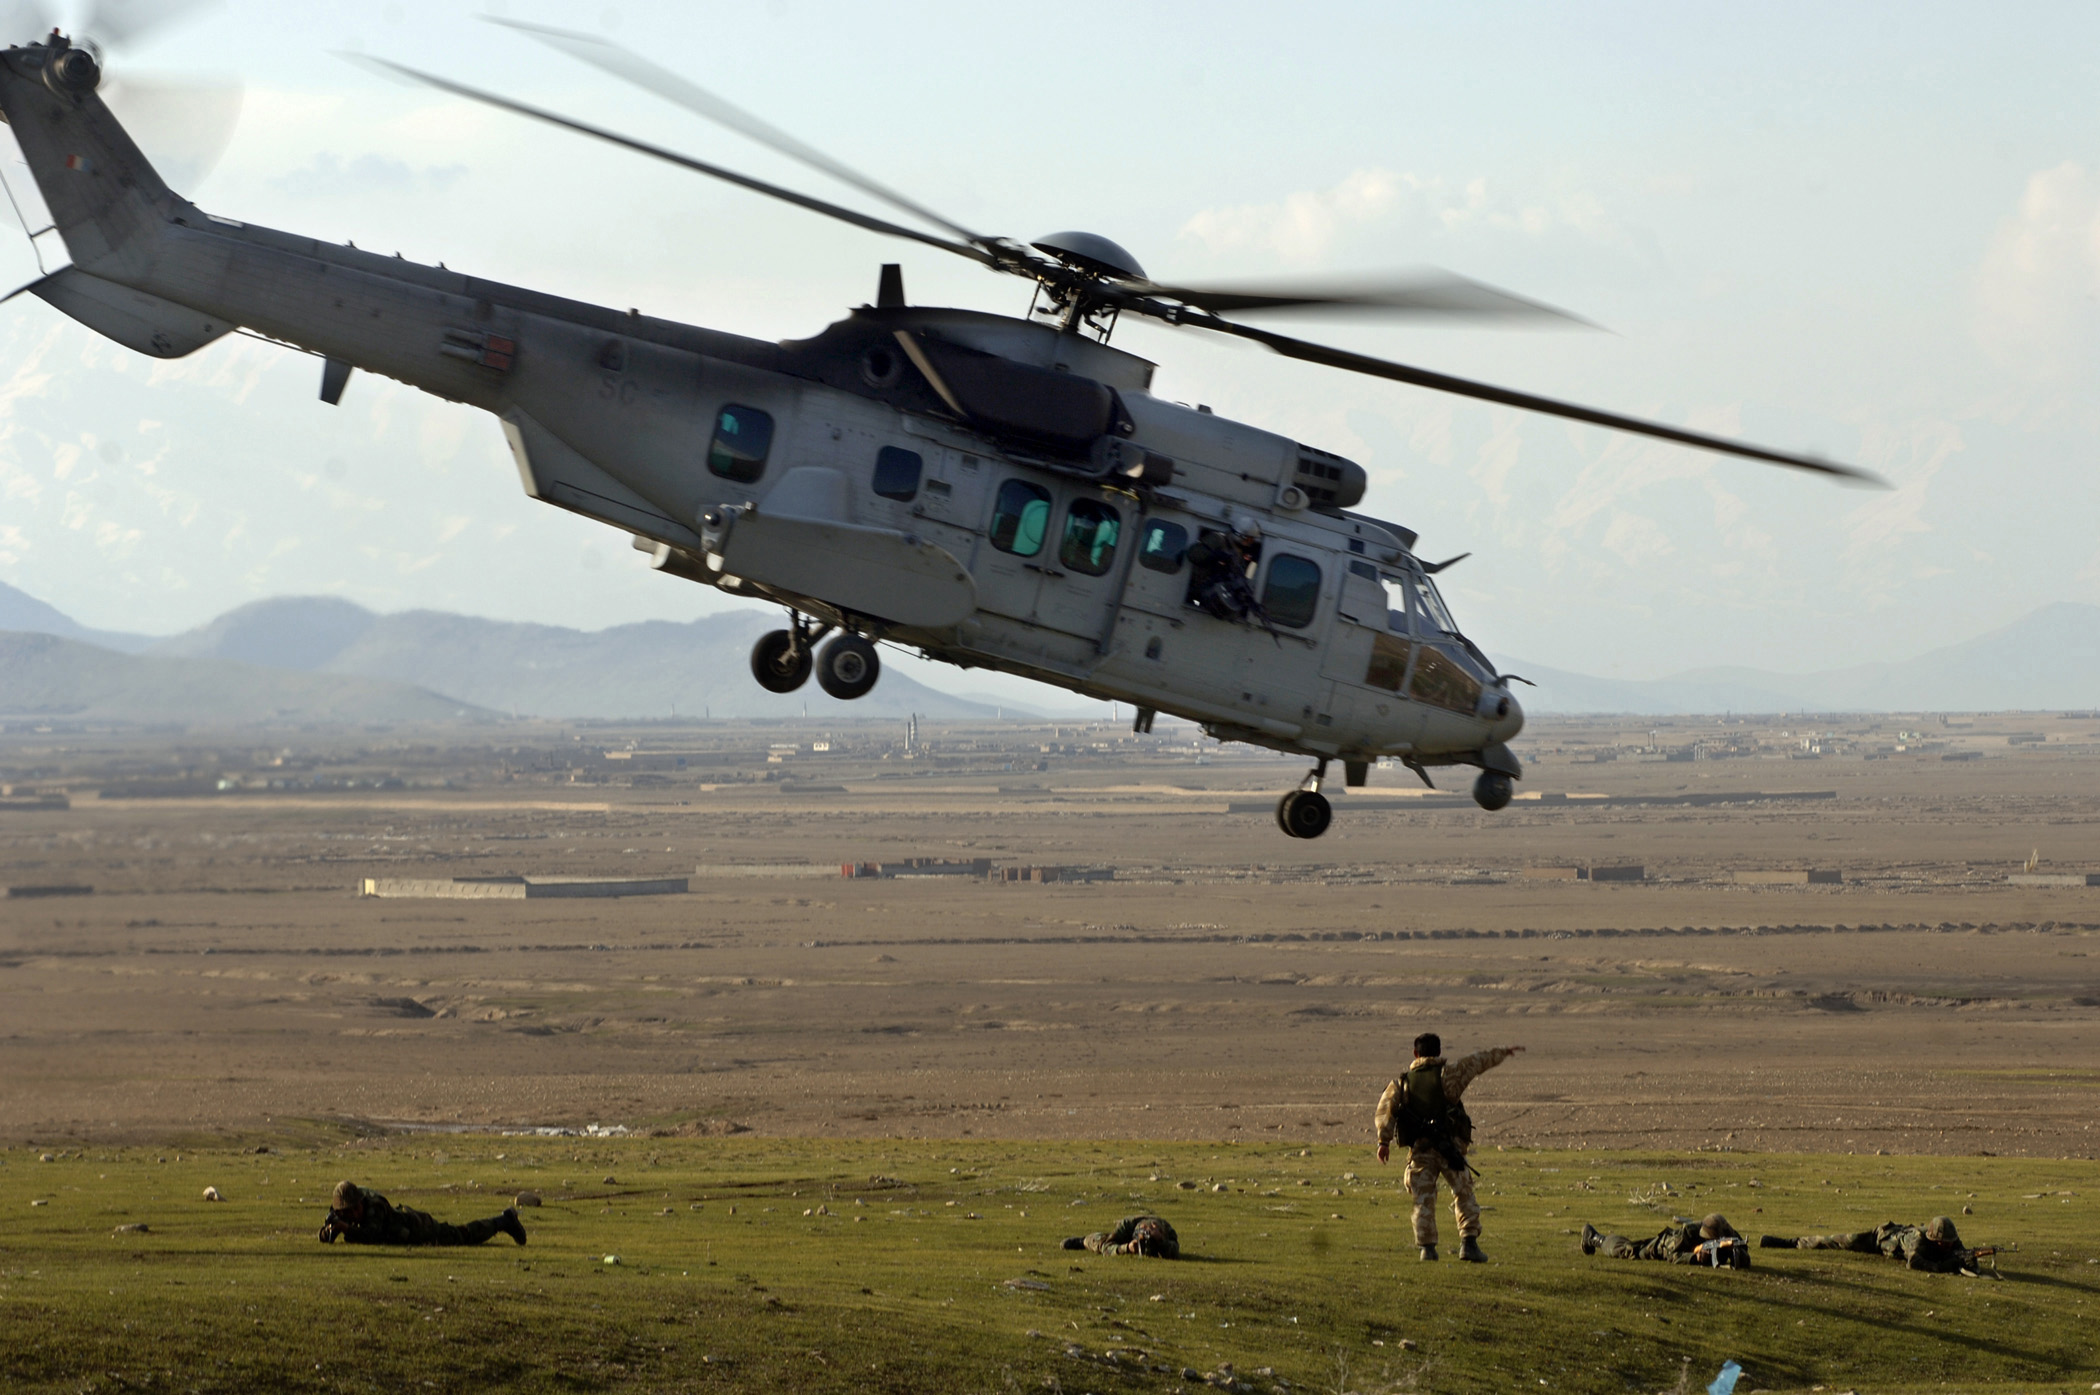 different types of helicopters with File French Army Cougar Helicopter  Afghanistan on Free Vector Helicopters further Advanced Helicopter Flight Training moreover Two Cows Explain Economics Better Than Any Class furthermore Flying Ball Helicopter reviews also 310678074277792597.